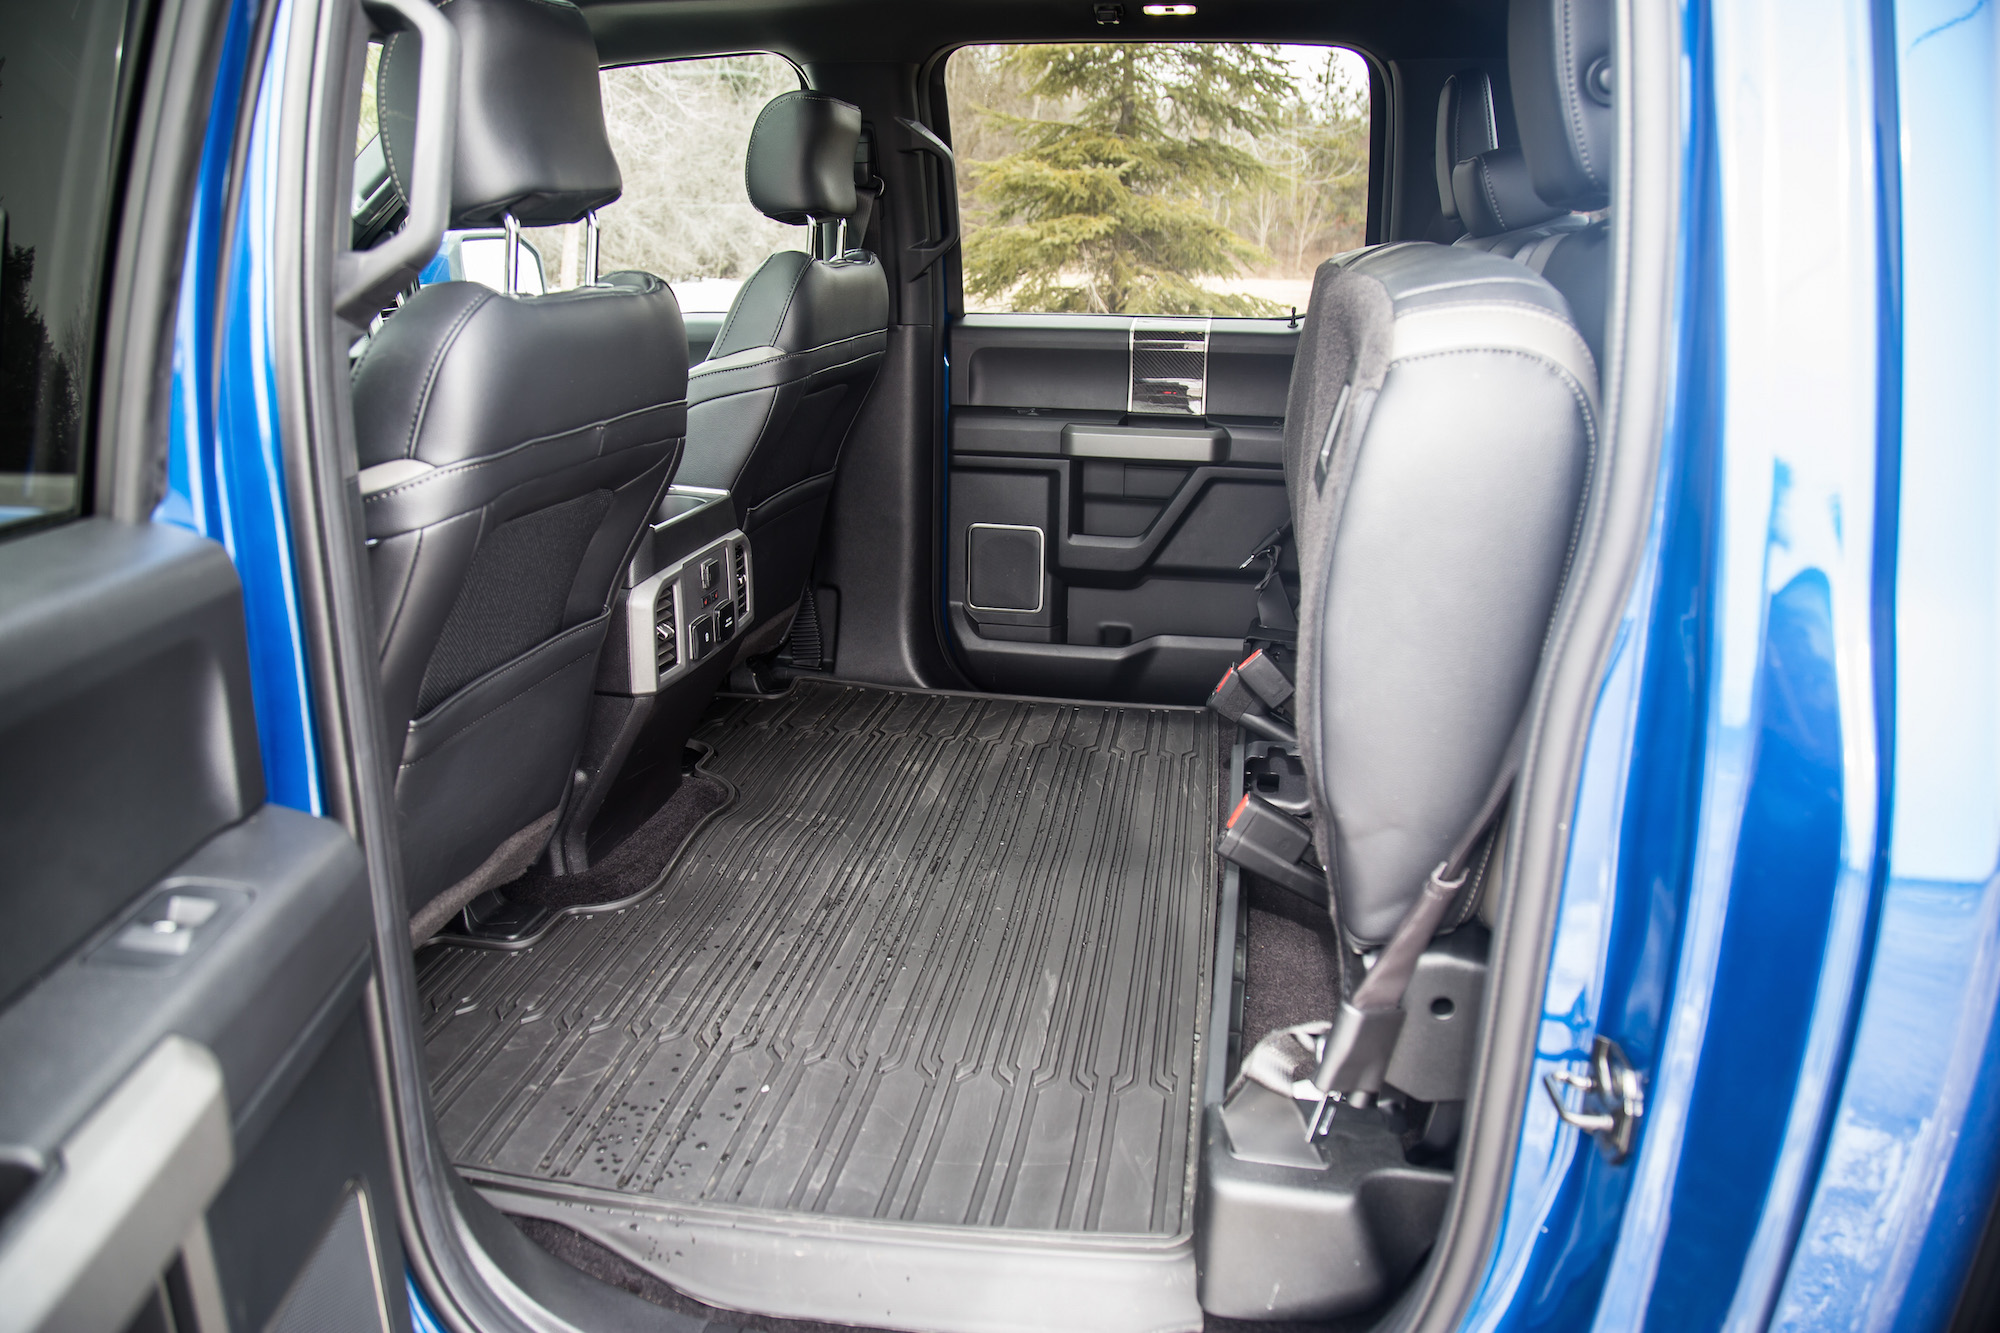 2017 F150 Supercab Seat Covers Velcromag